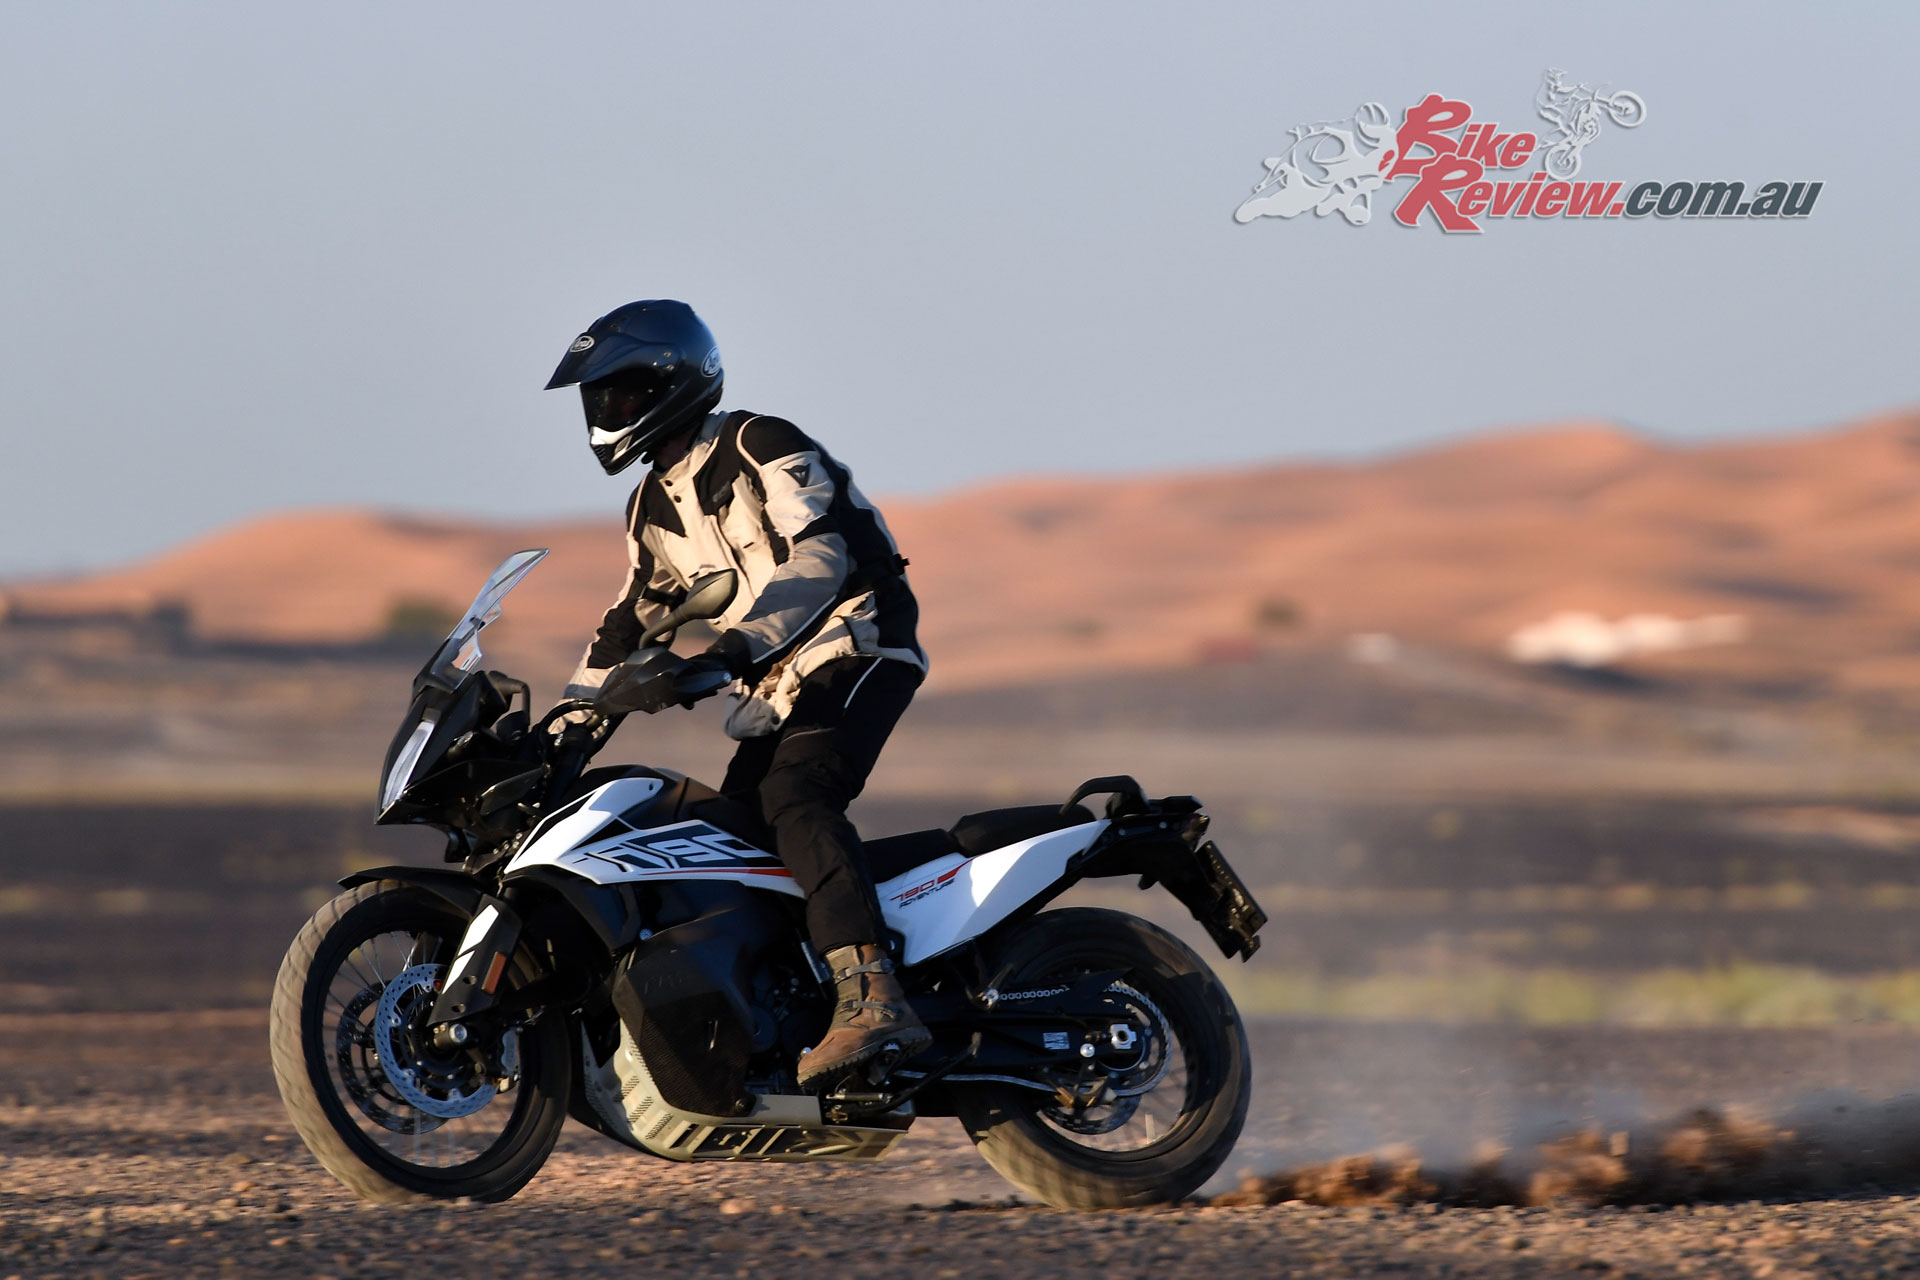 The 2019 KTM 790 Adventure may not offer same the fully loaded experience of a larger tourer or adventure bike, but the fun available on the streets and trails is unbeatable by comparison